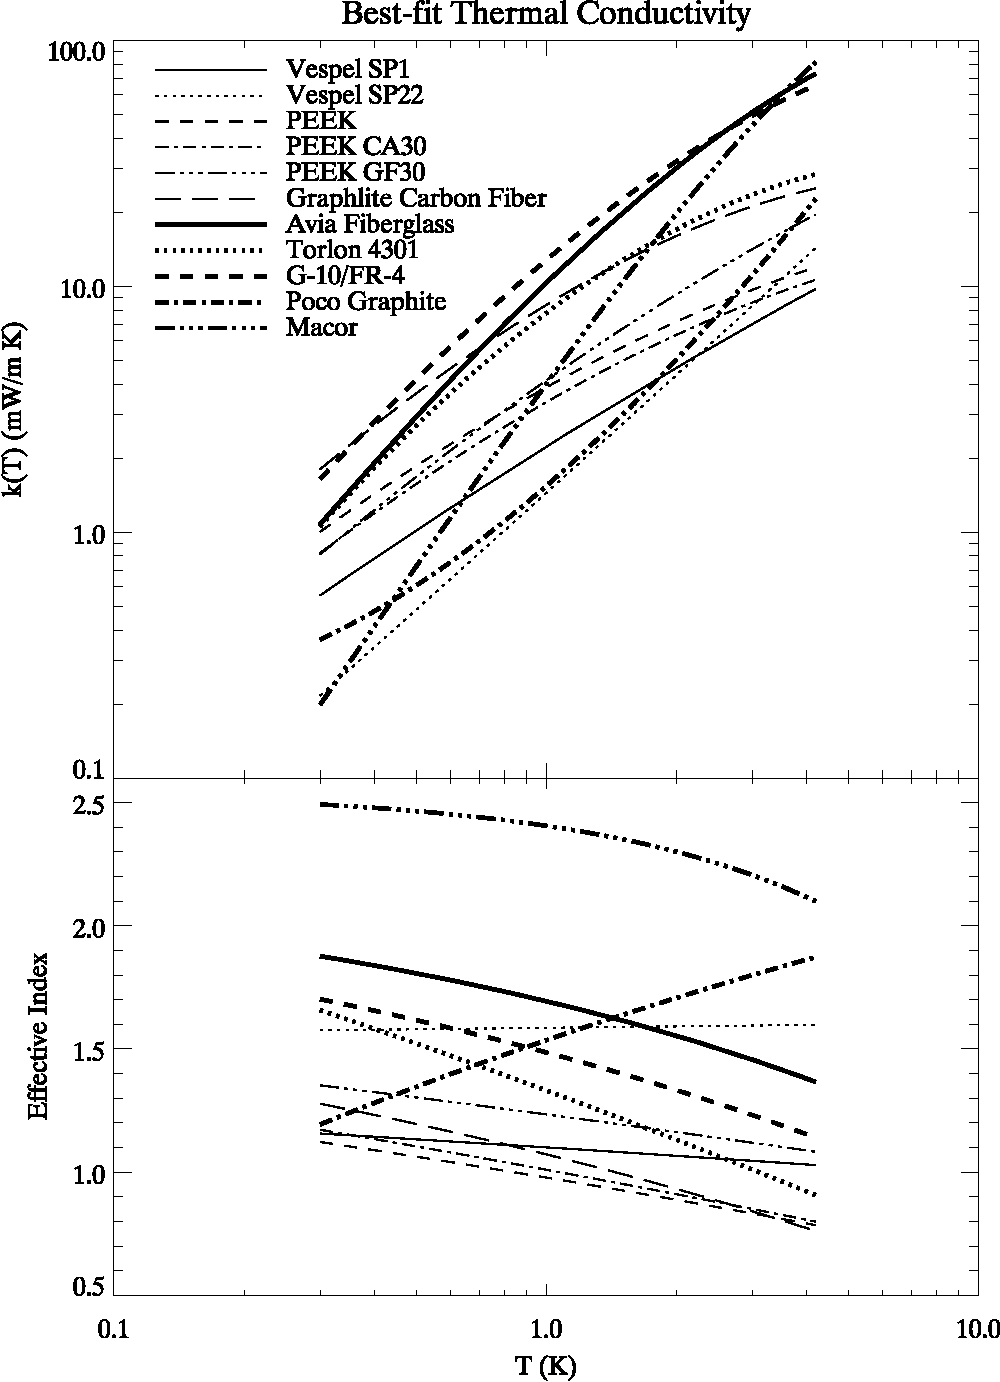 Thermal Conductivity of Thermally-Isolating Polymeric and Composite